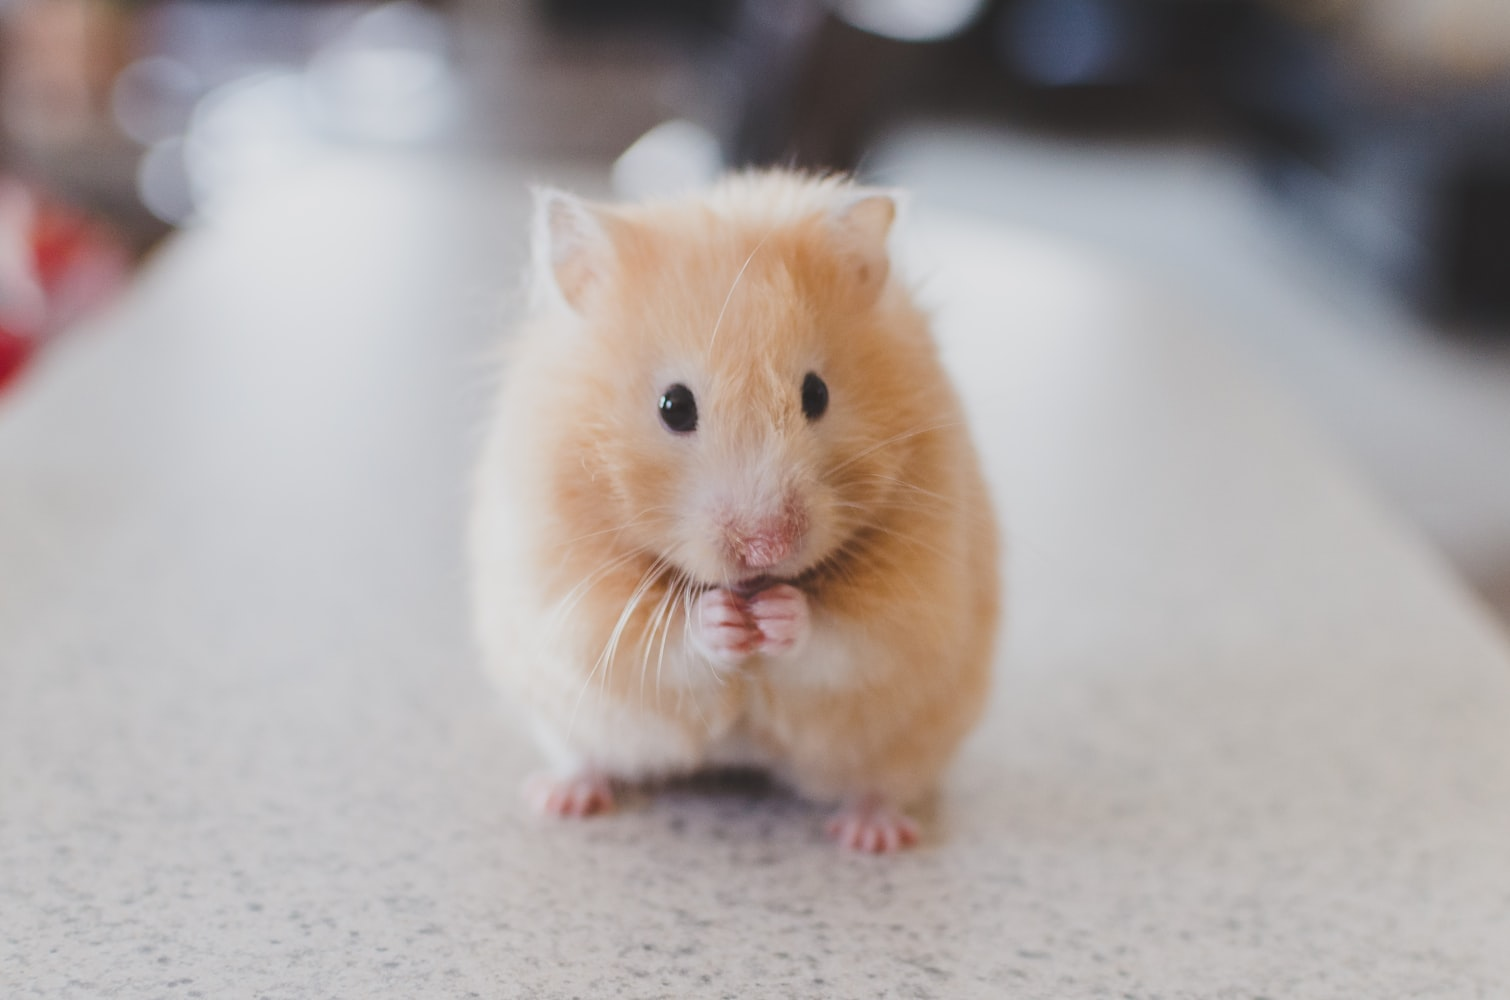 a brown hamster eating